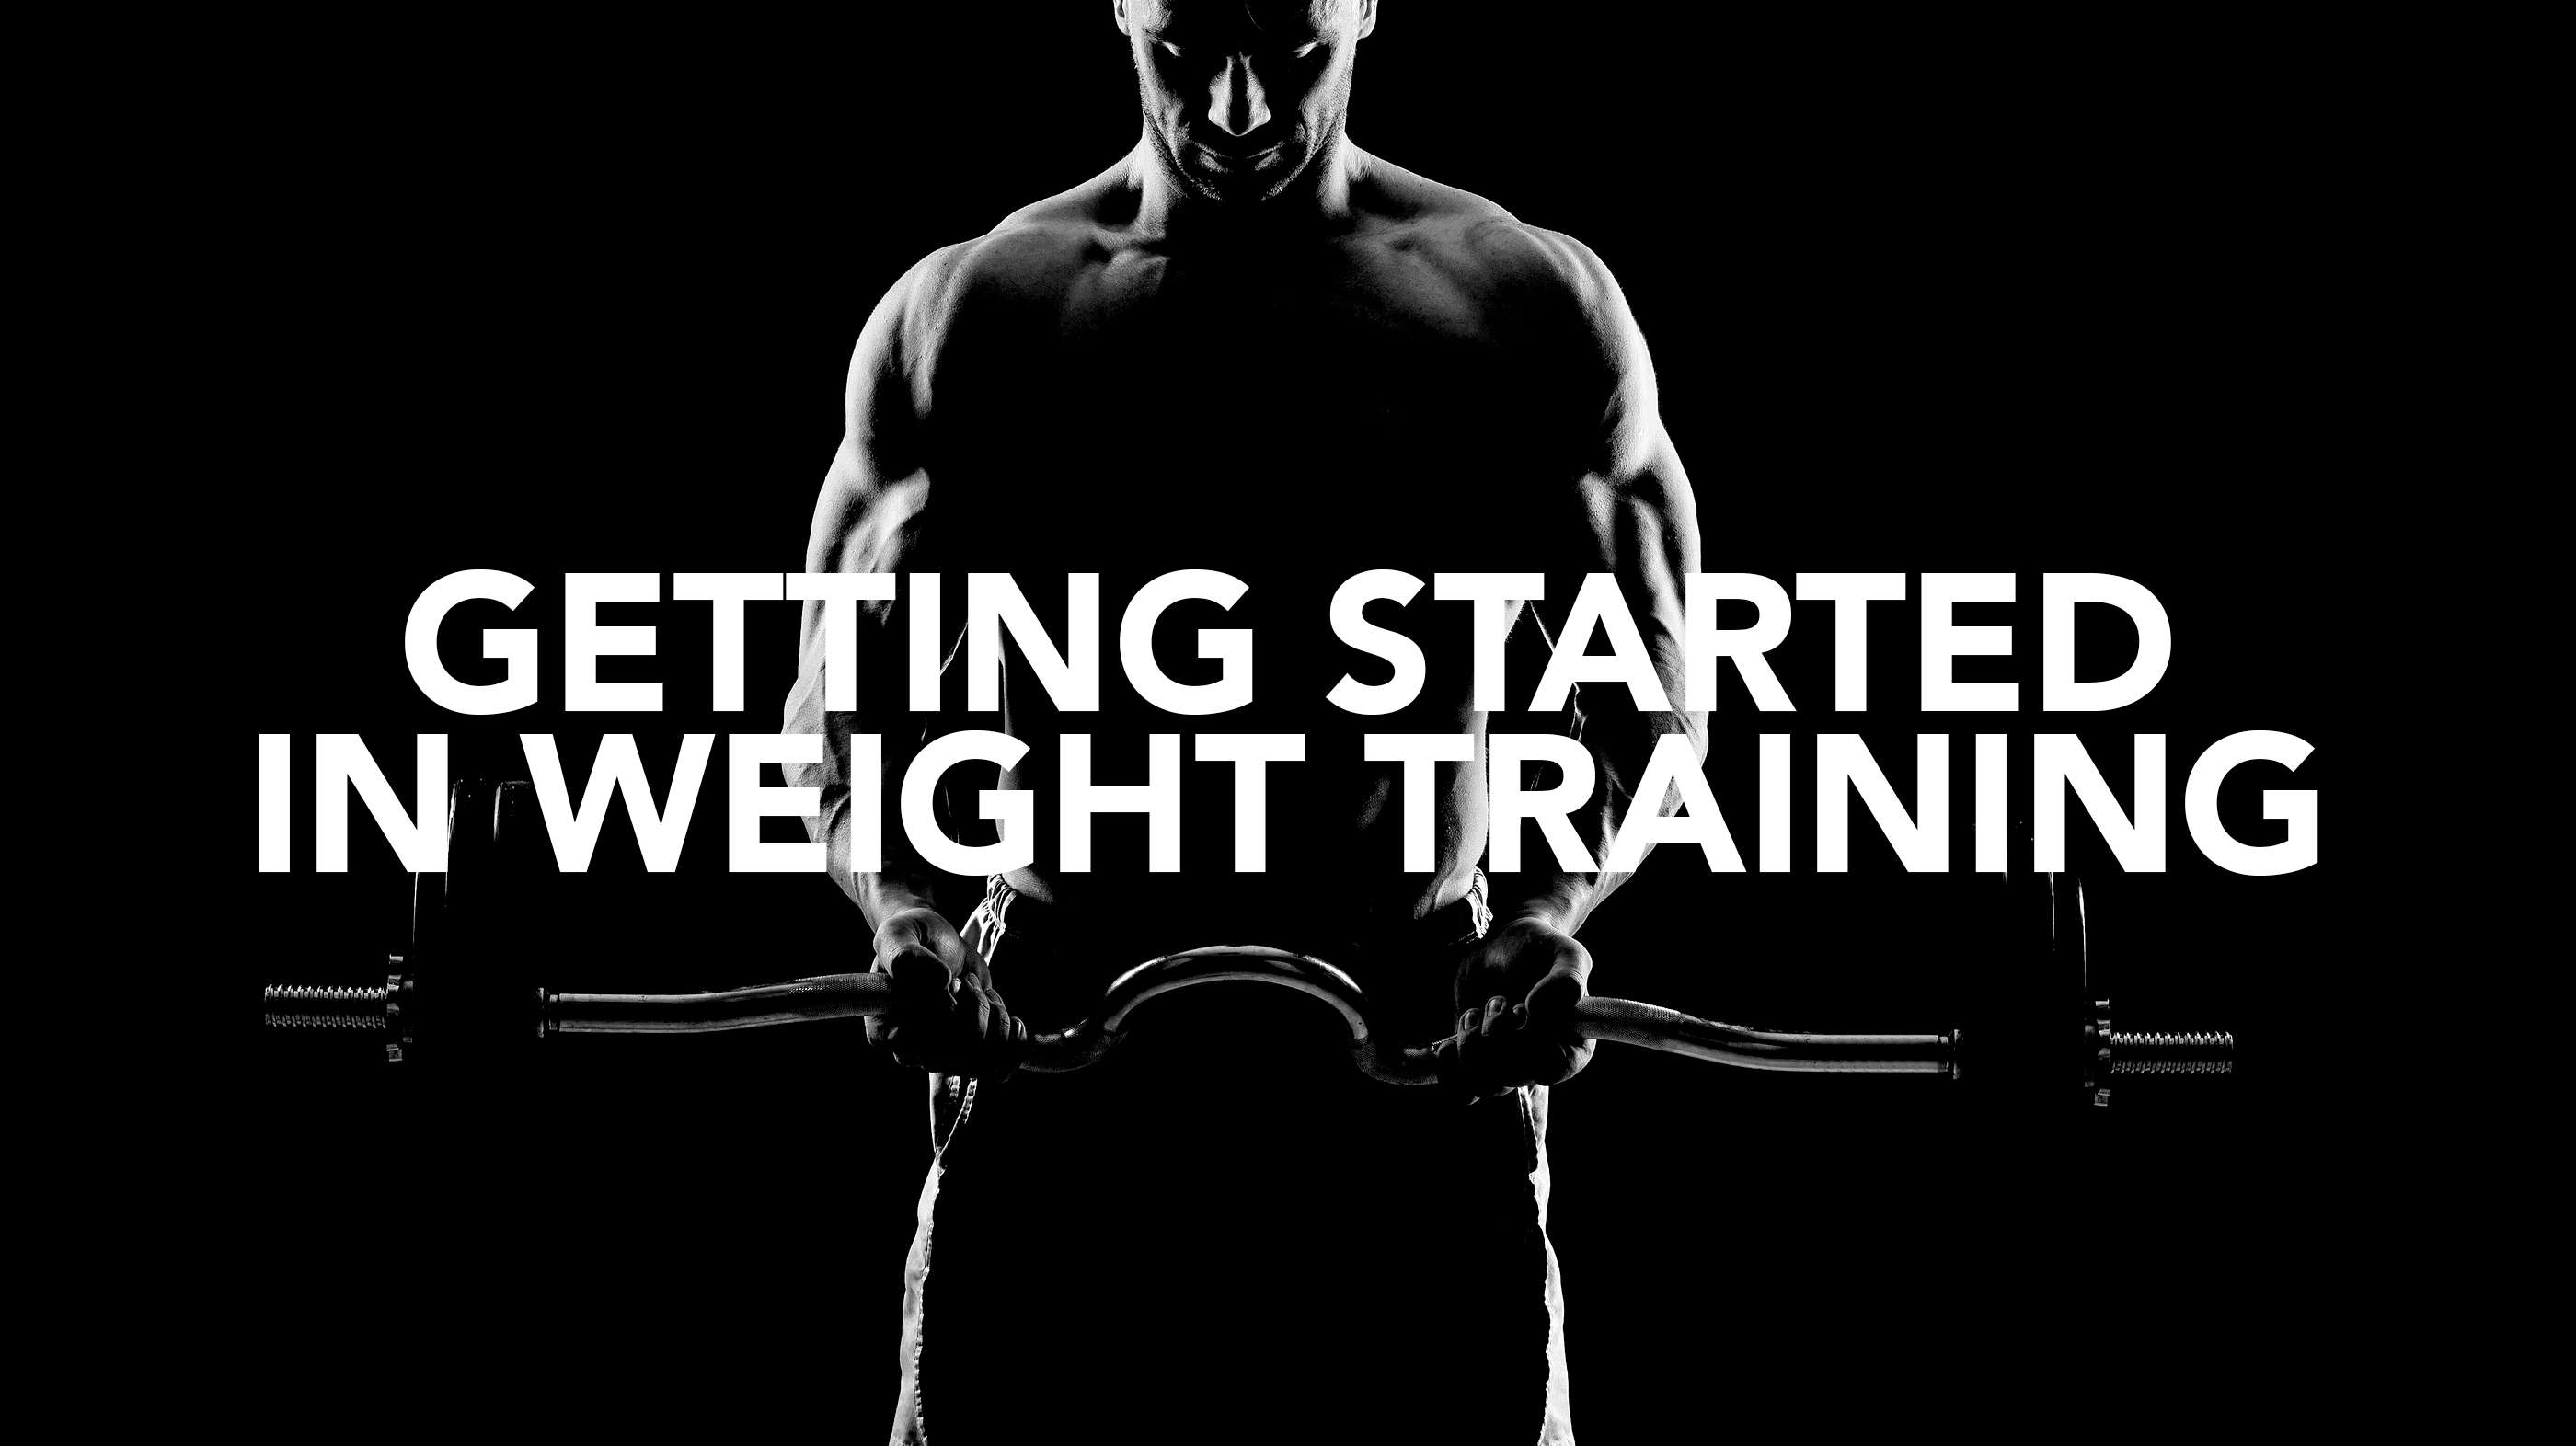 Getting Started in Weight Training